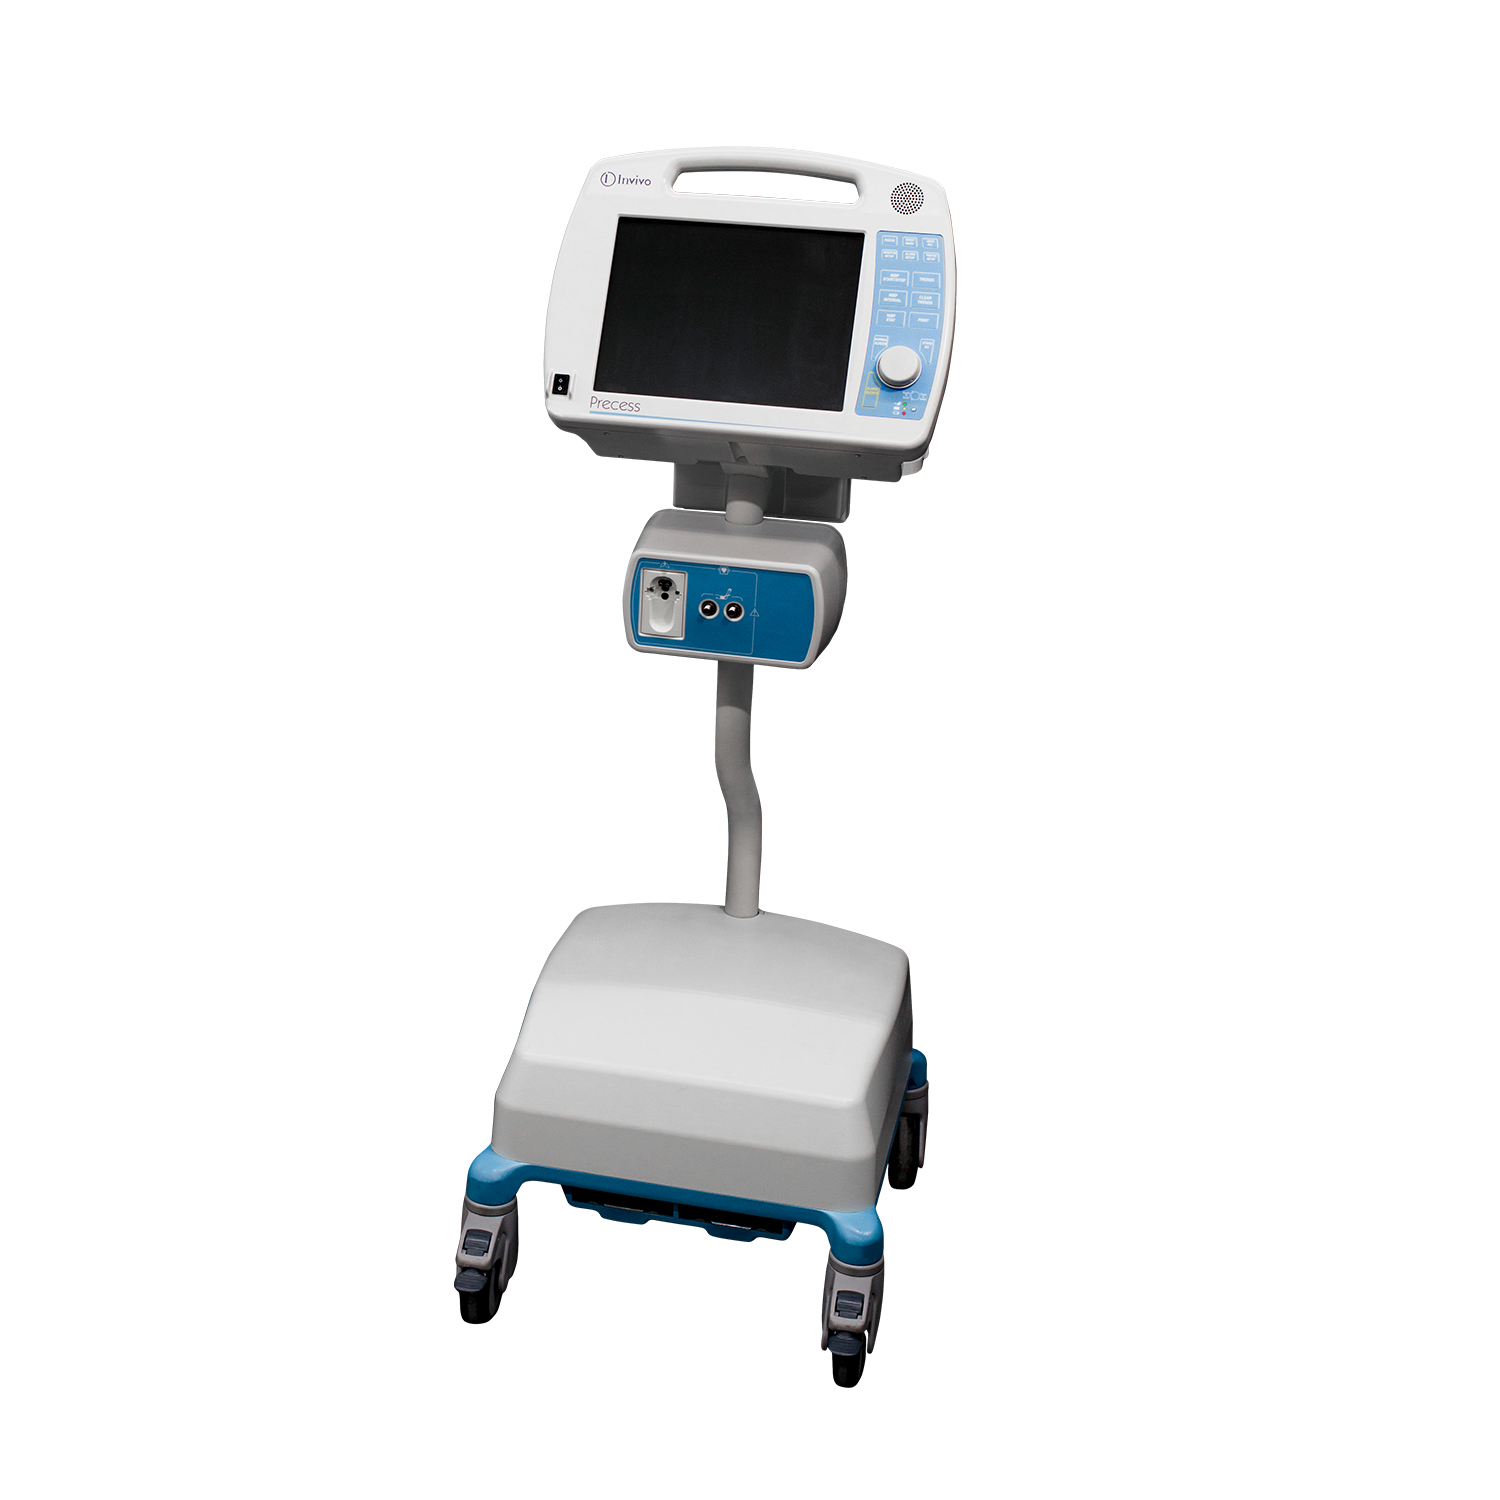 Invivo Precess 3160 Blue MRI Patient Monitor